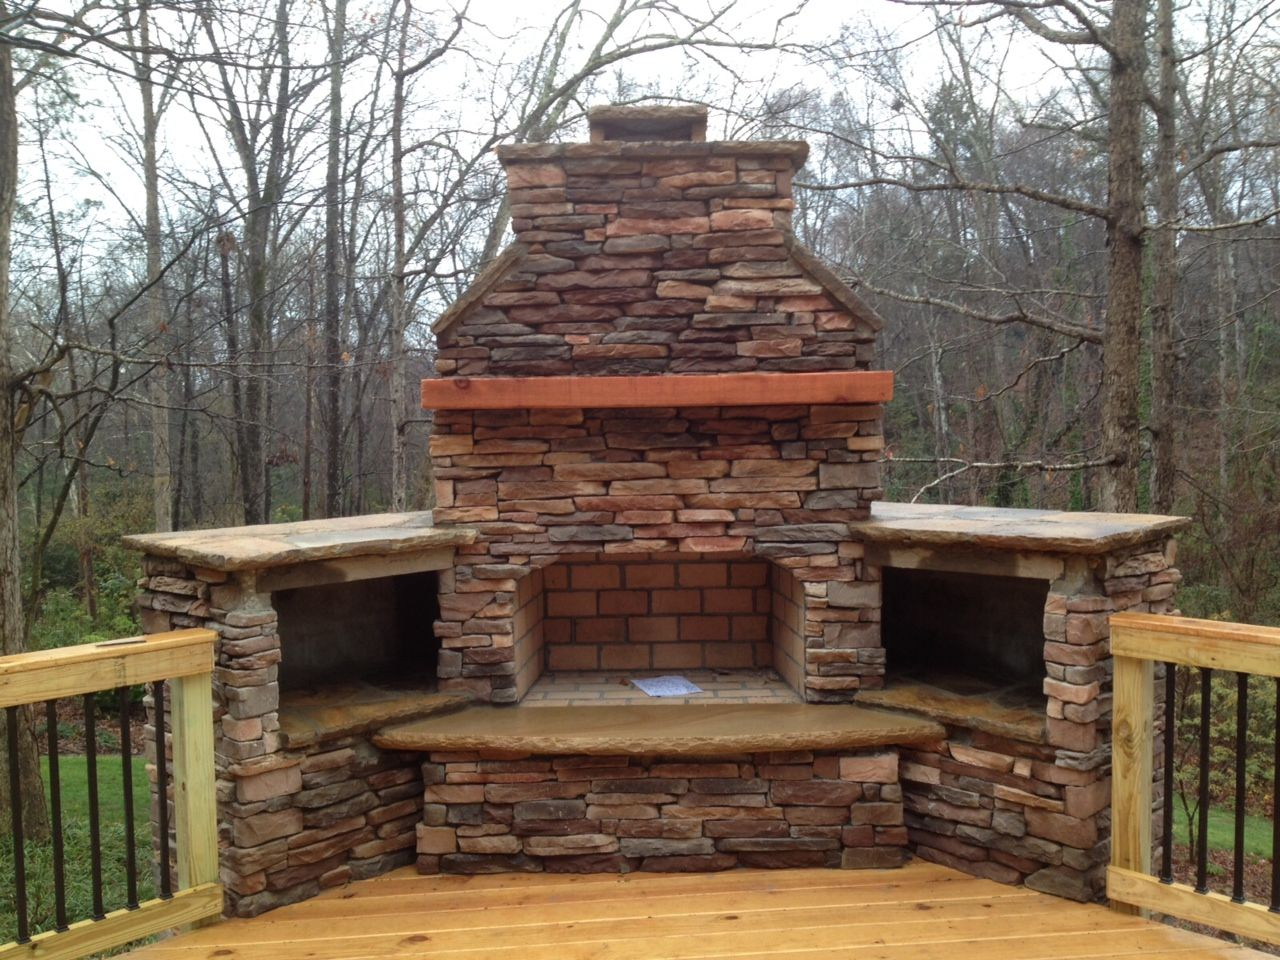 Backyard Fireplace Designs Outdoor Fireplace On Wood Deck With Deckorator Balusters